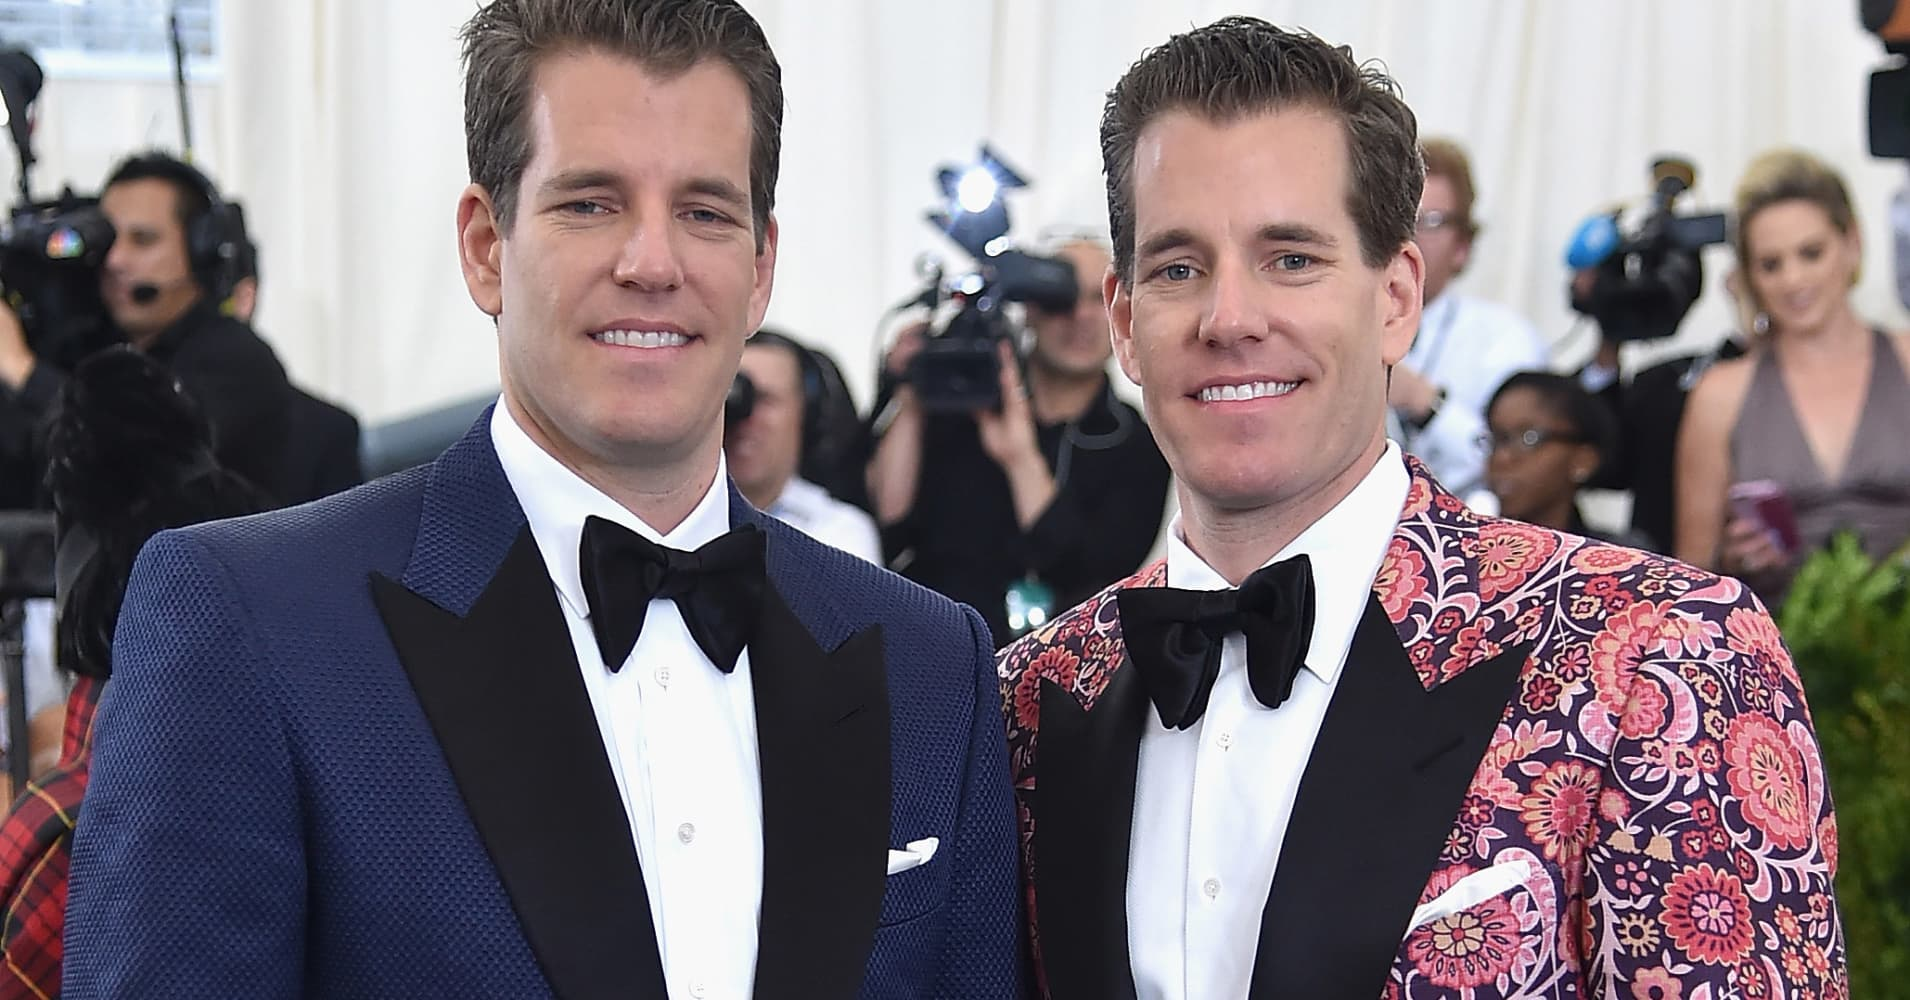 Winklevoss Twins Reach Billionaire Status via Bitcoin